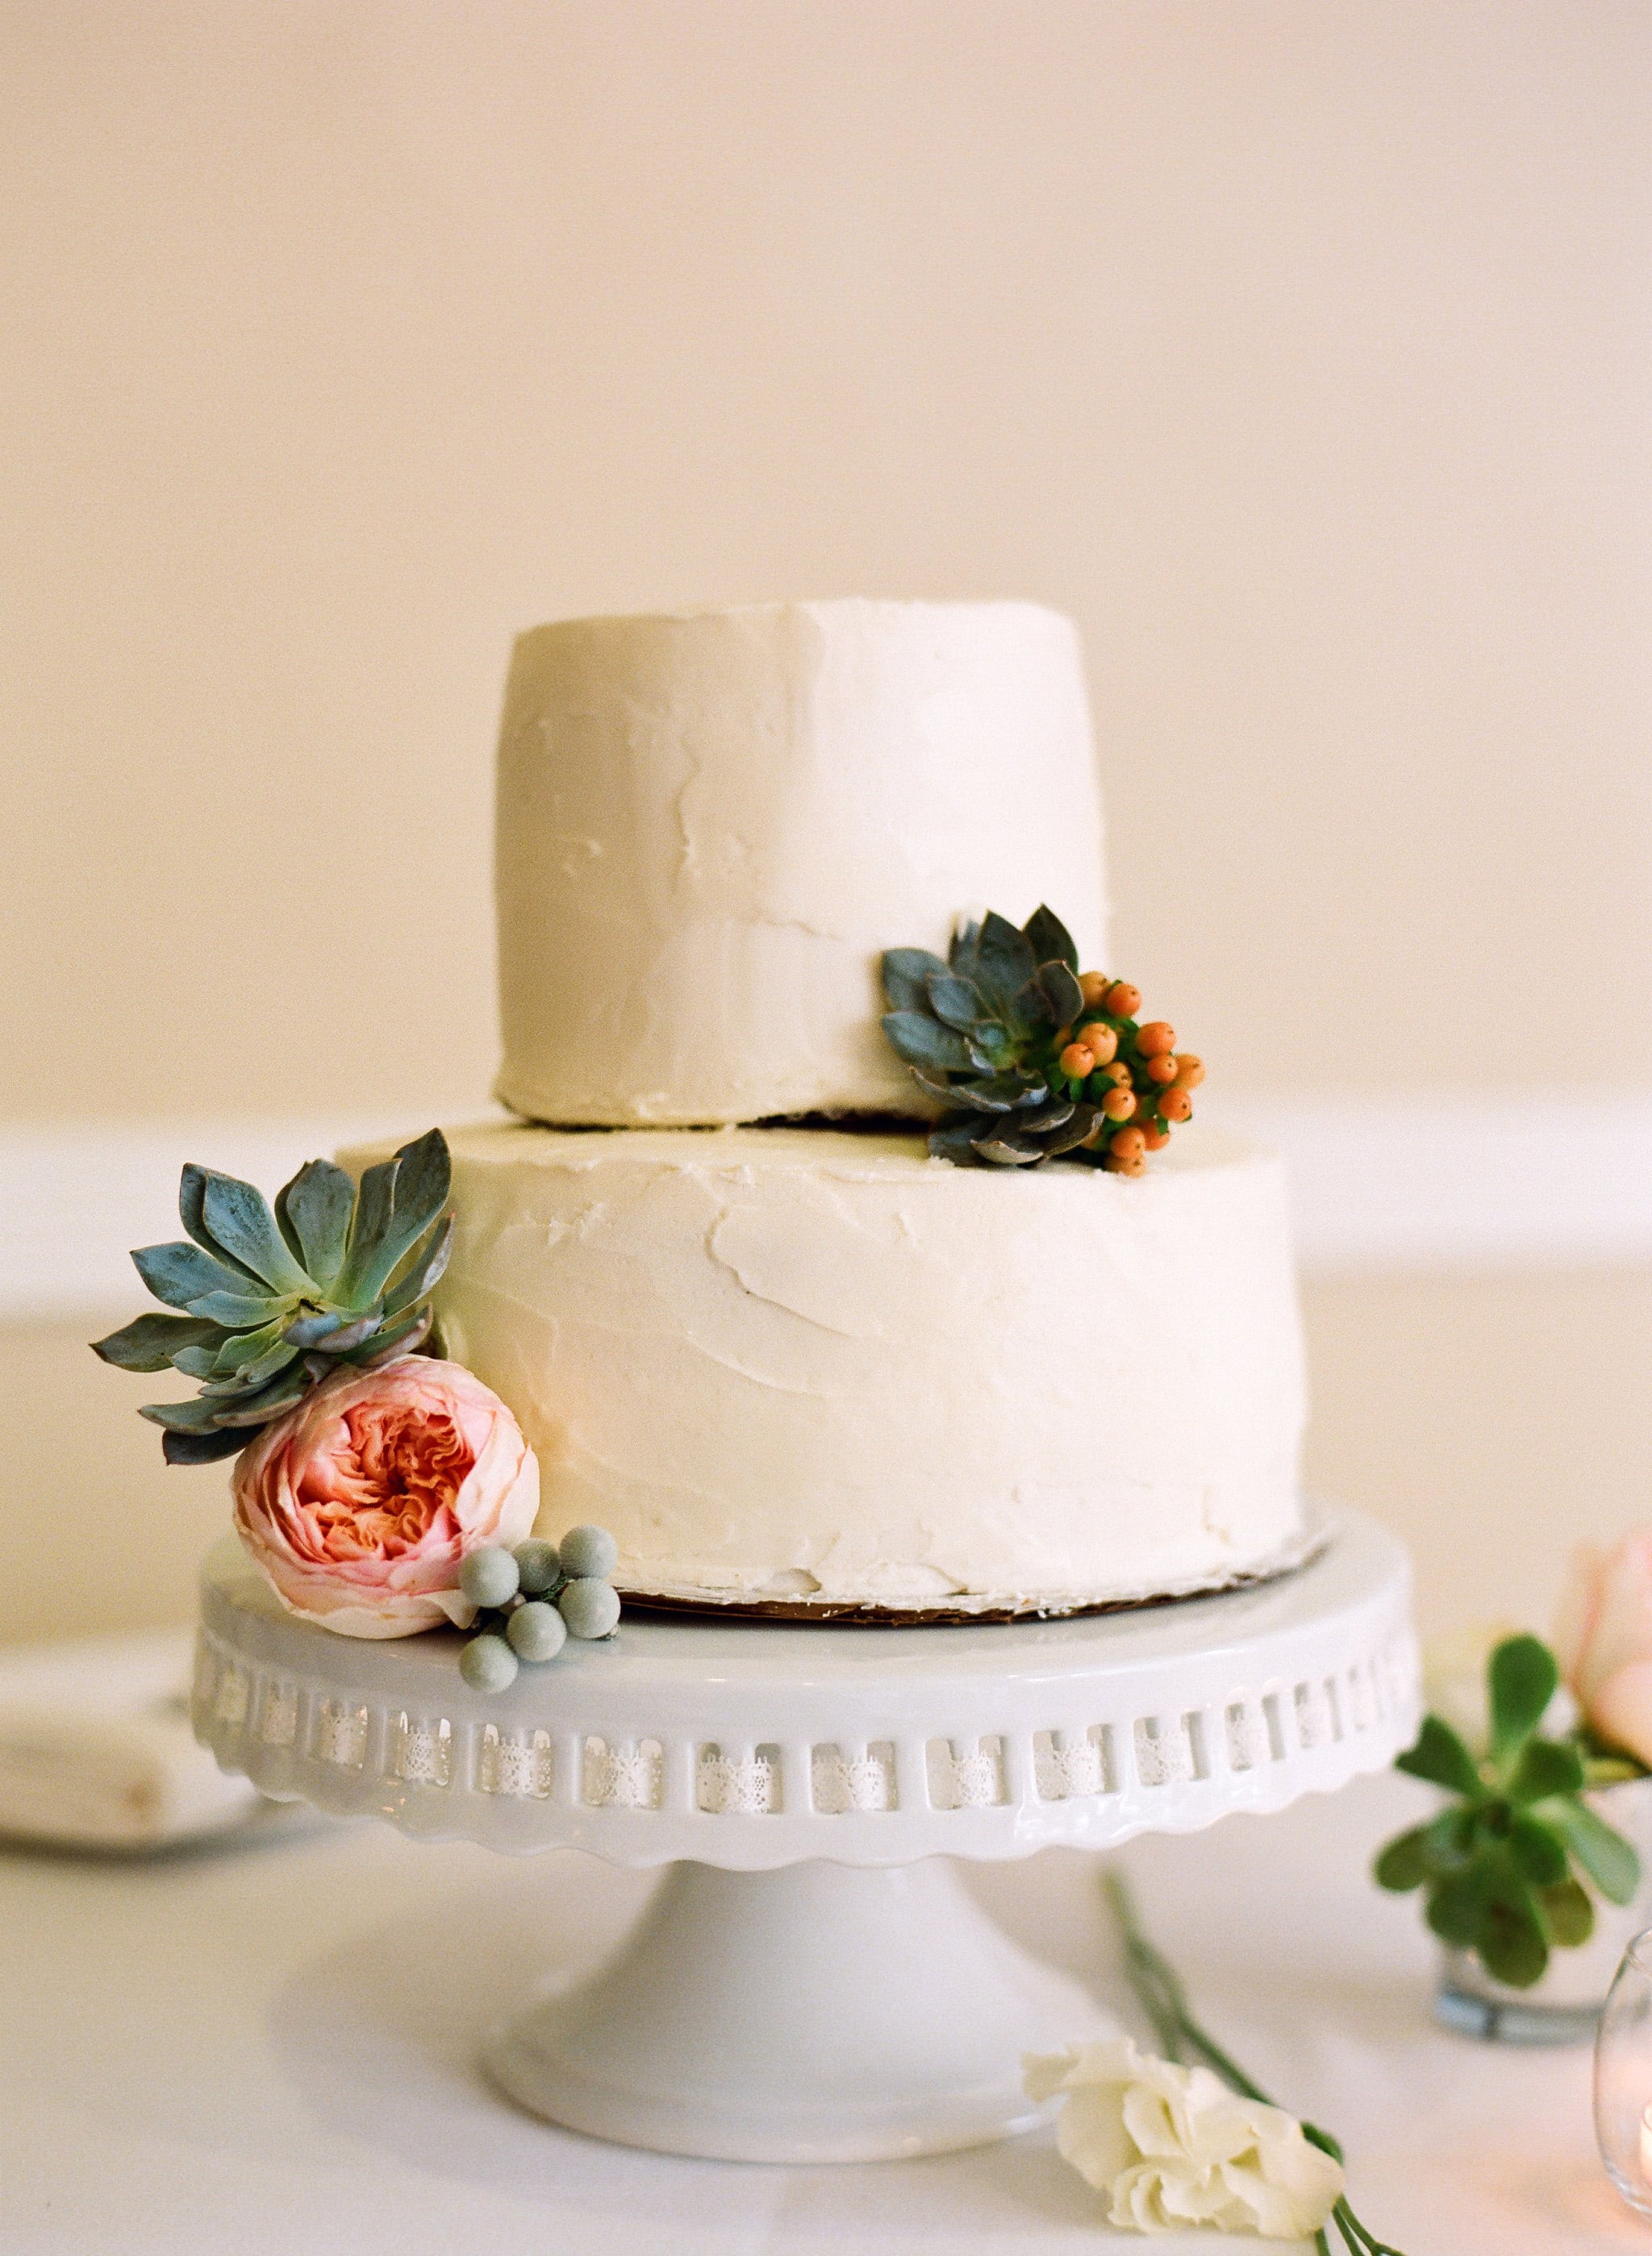 We Love How Succulents Instantly Take This Simple Two Layer Cake The Ultimate Wedding Cake Roundup 100 Showstopping Sweets Popsugar Food Photo 6